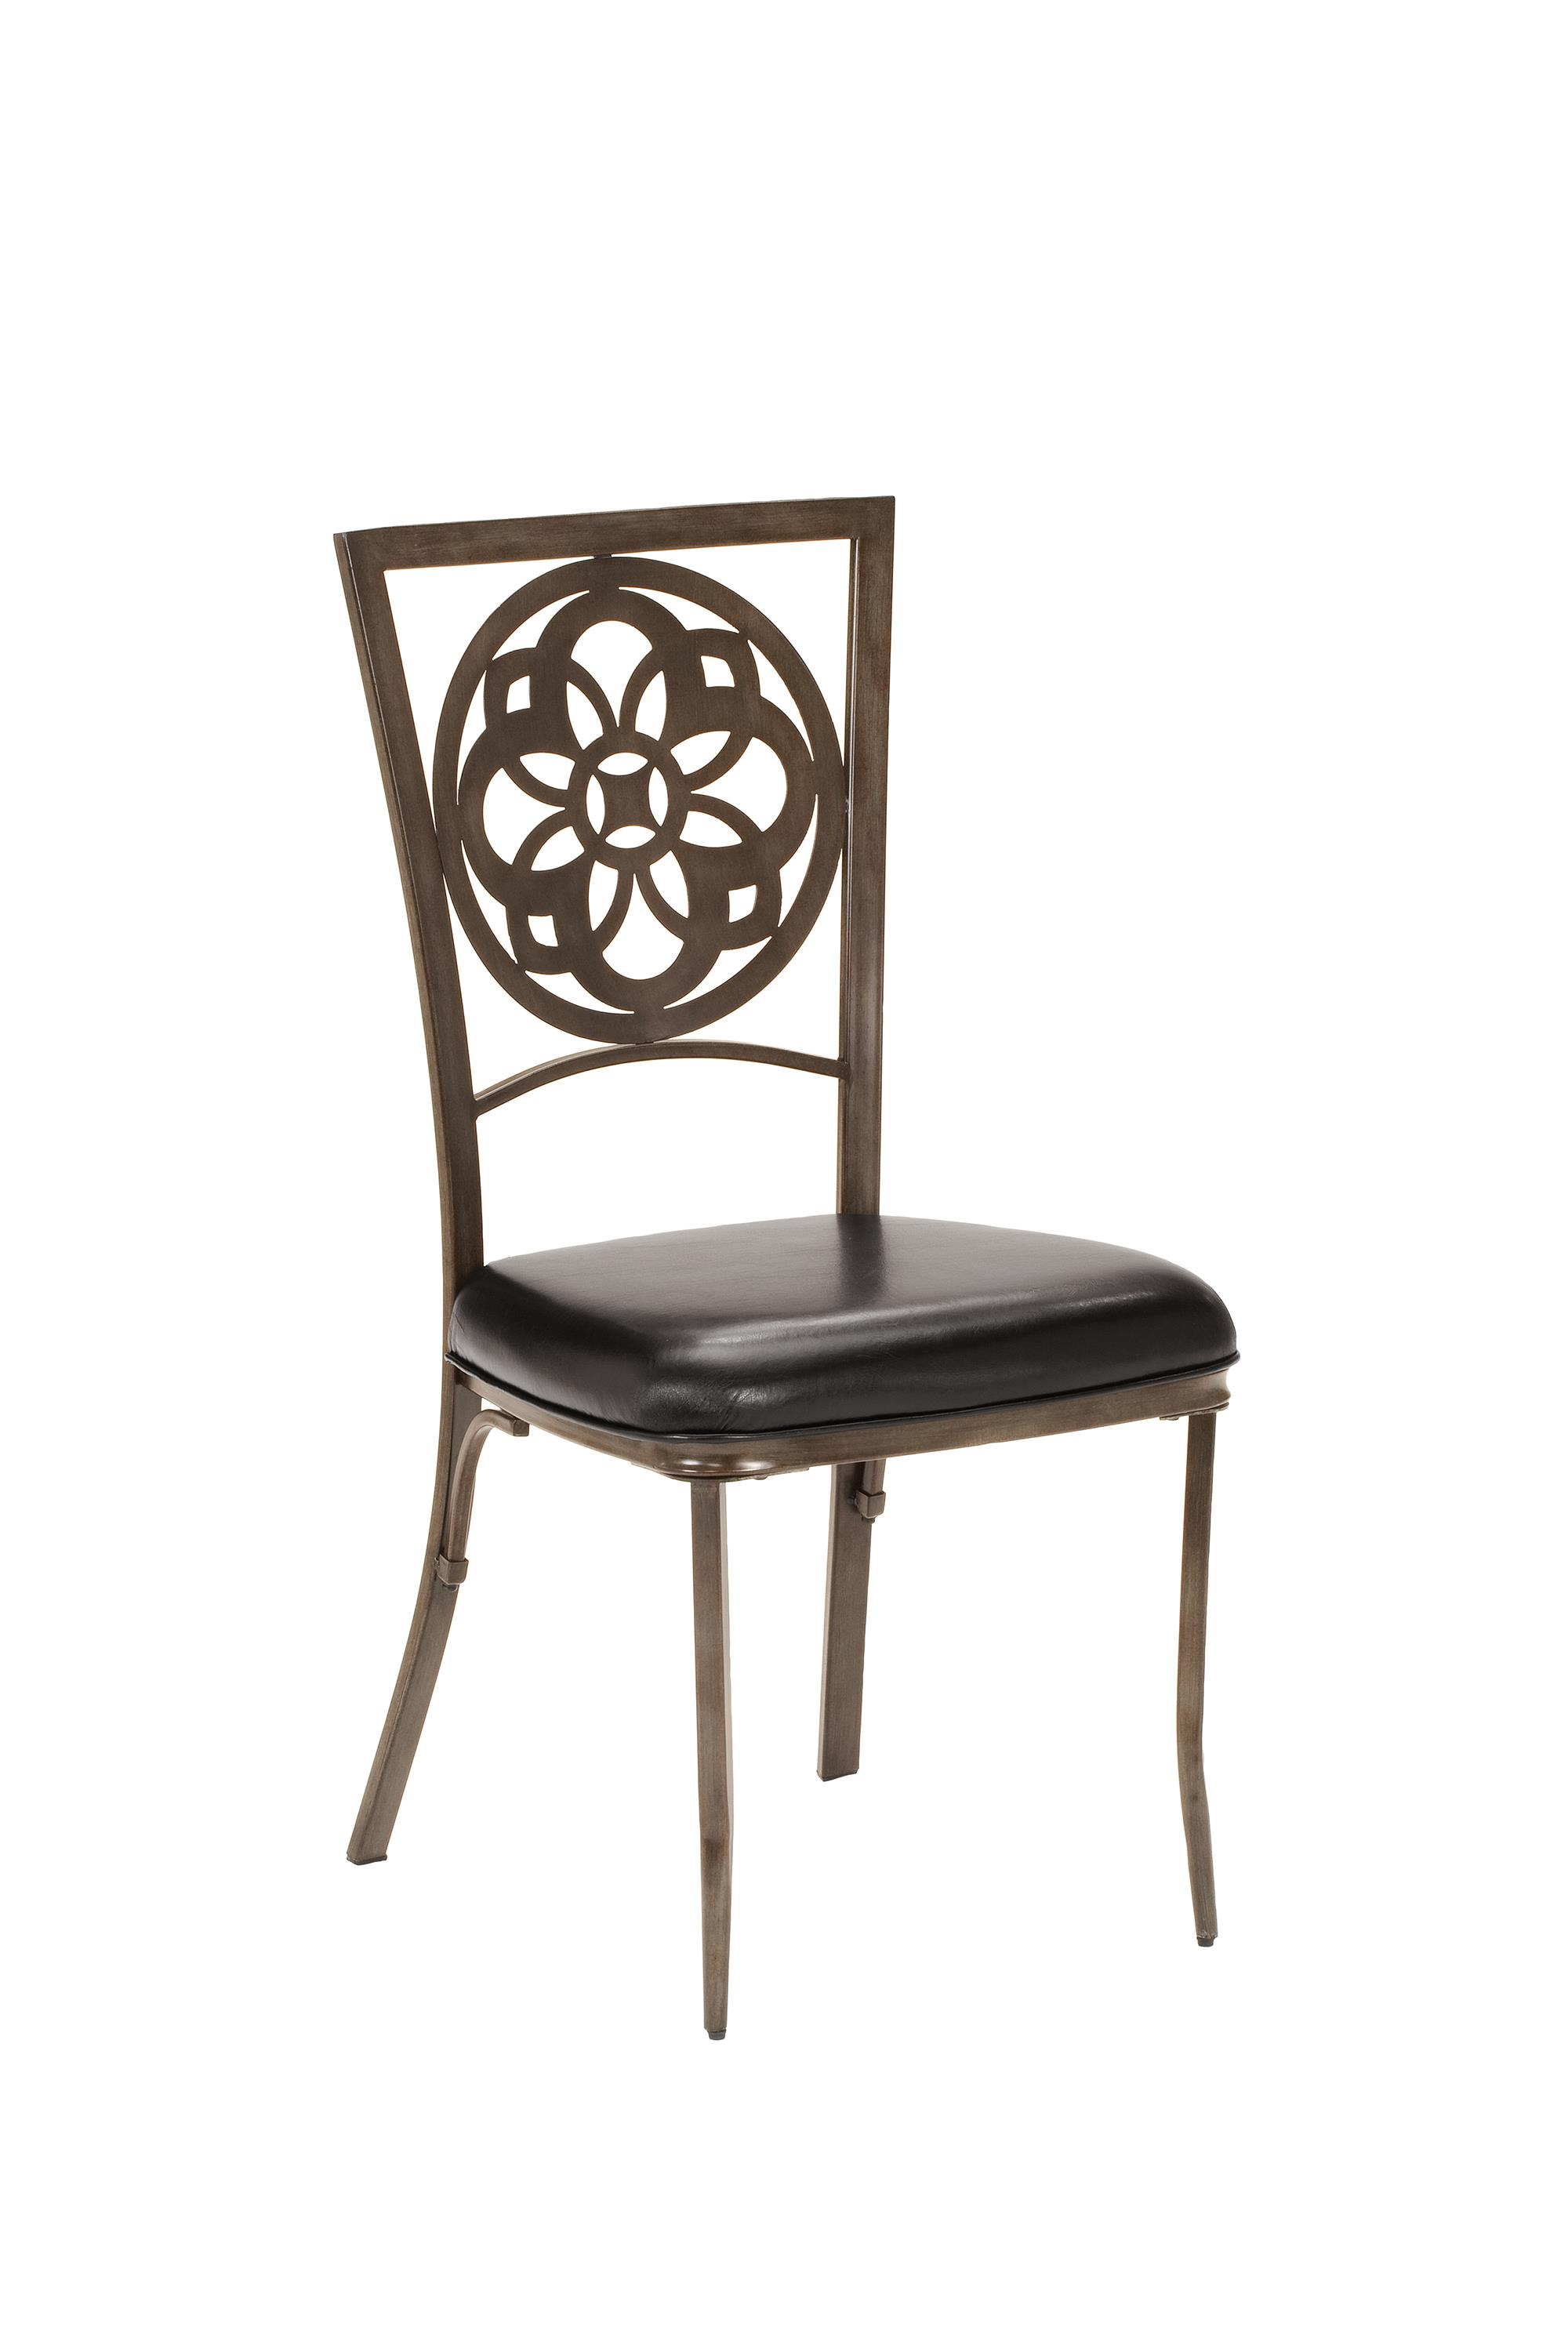 Hillsdale Marsala Dining Chair - Item Number: 5435-802